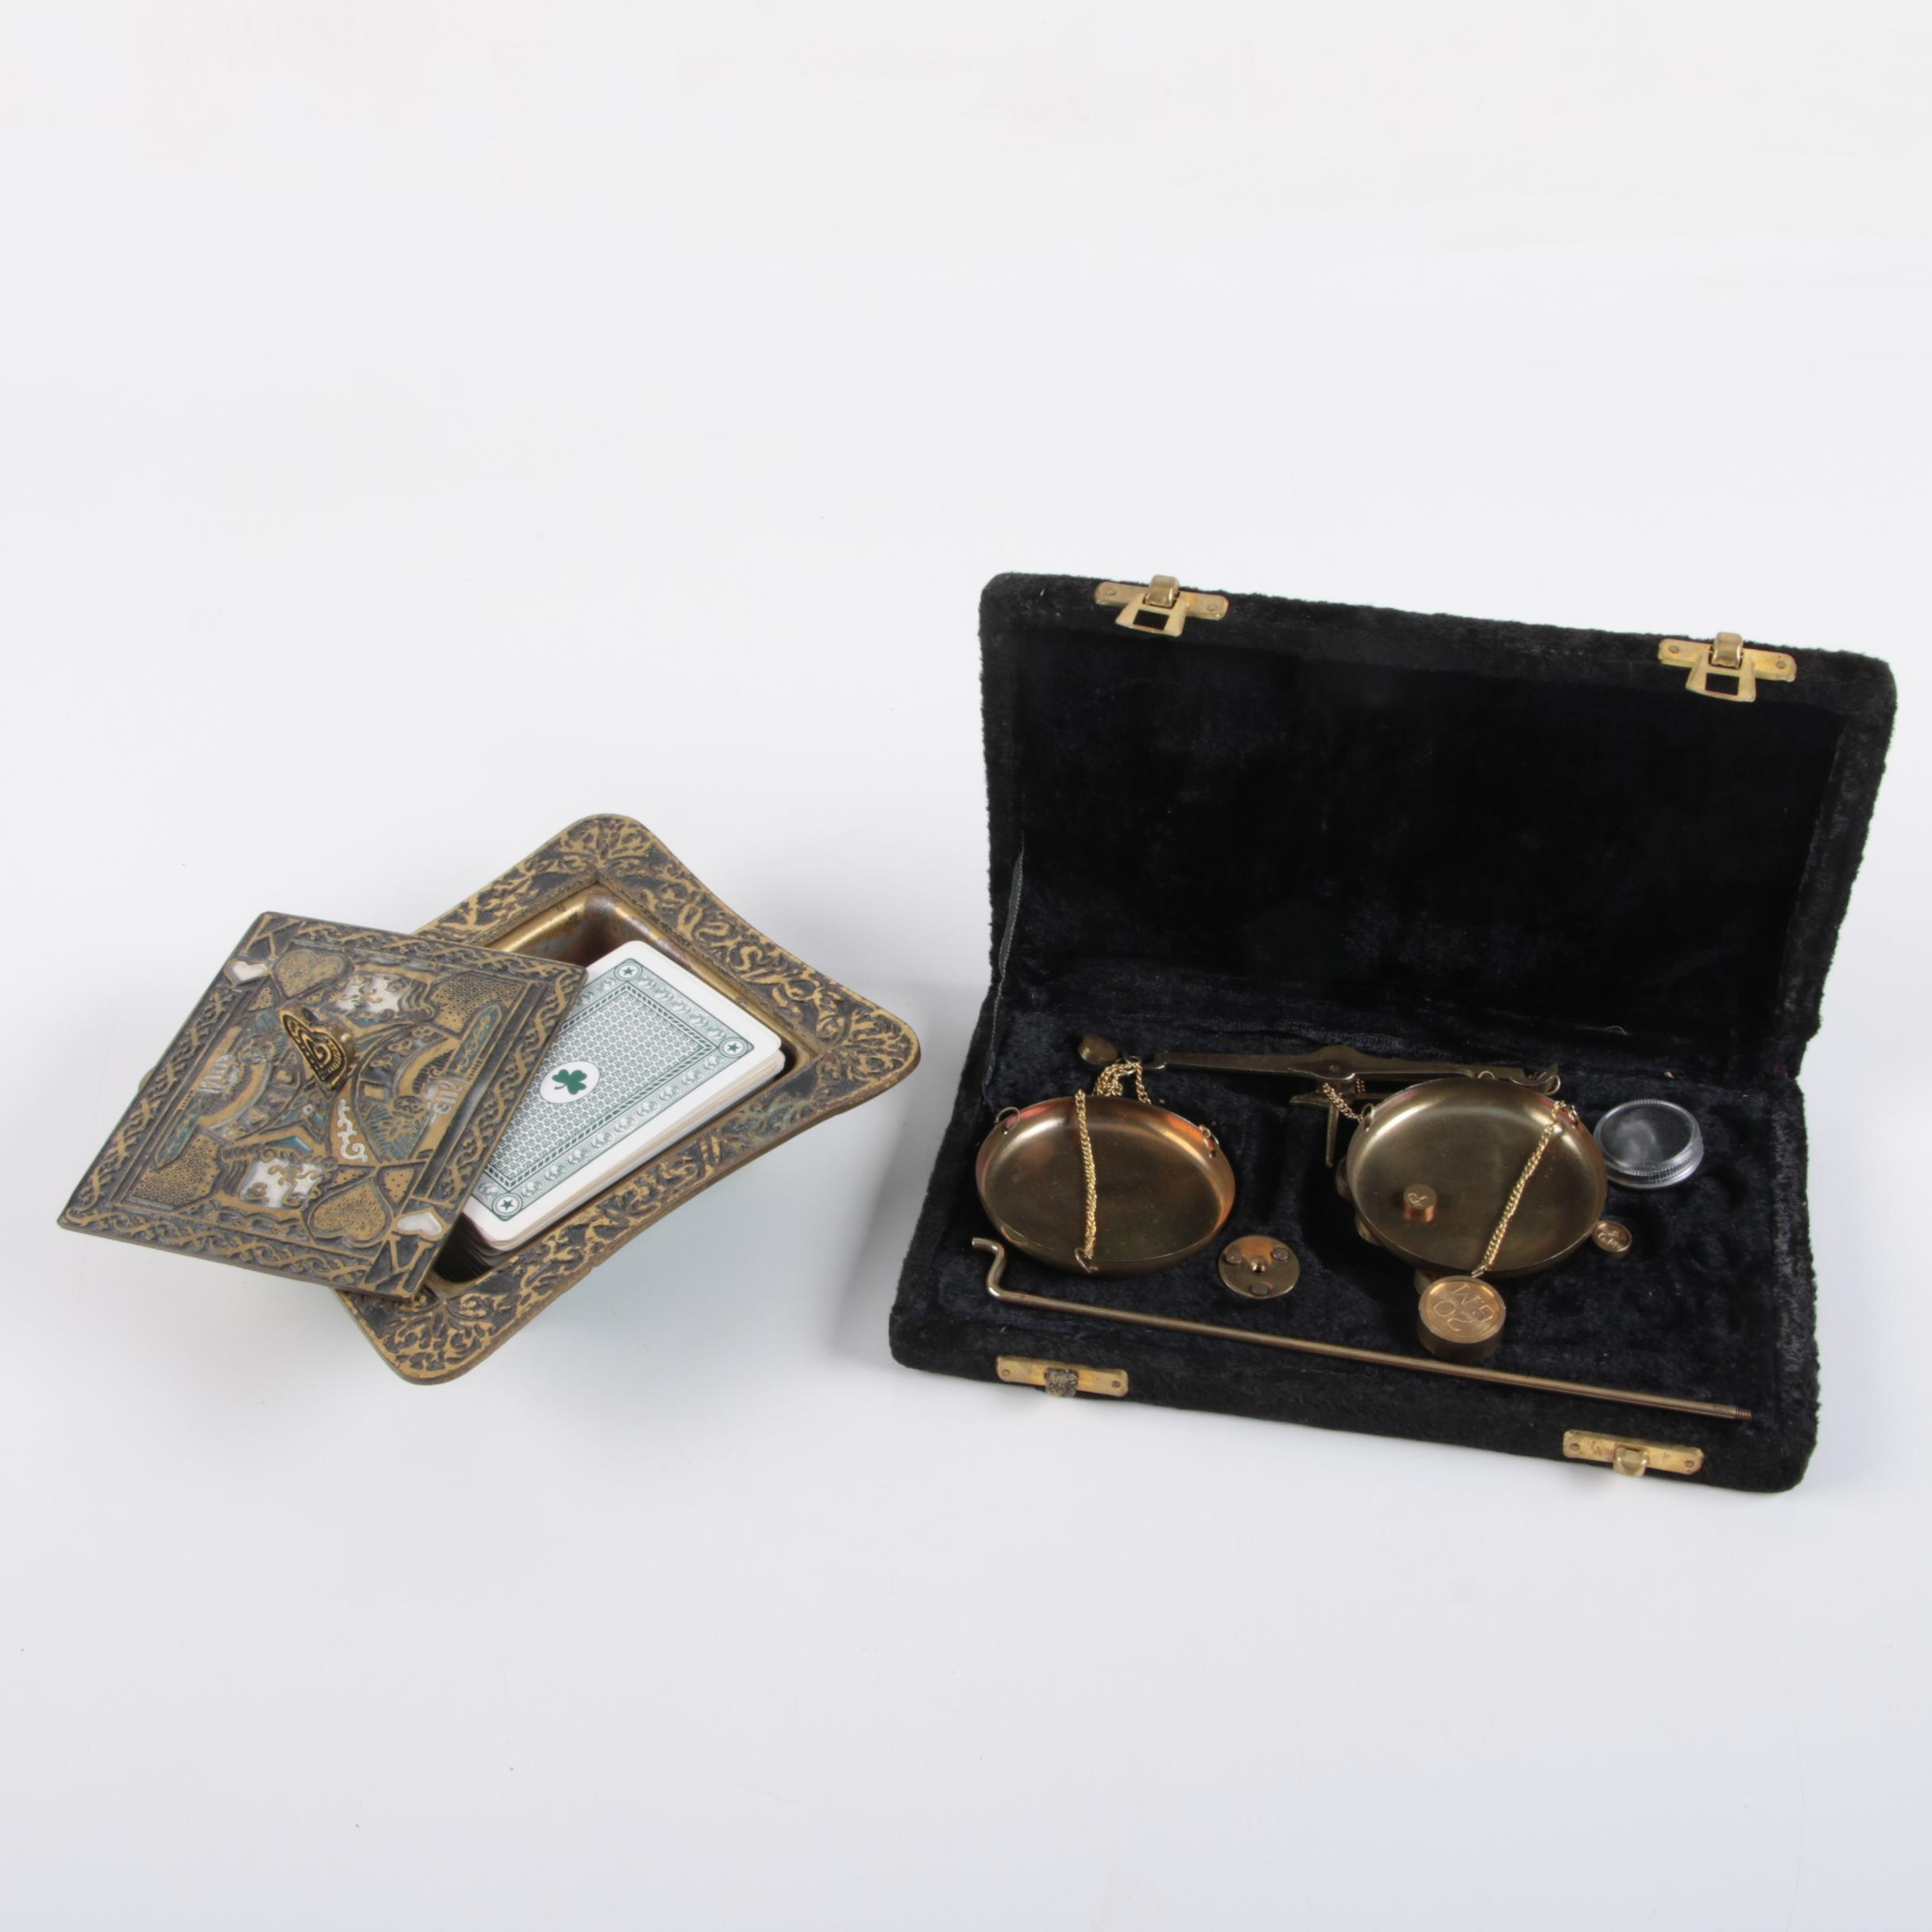 Metal Box of Playing Cards with Brass Scale in Box